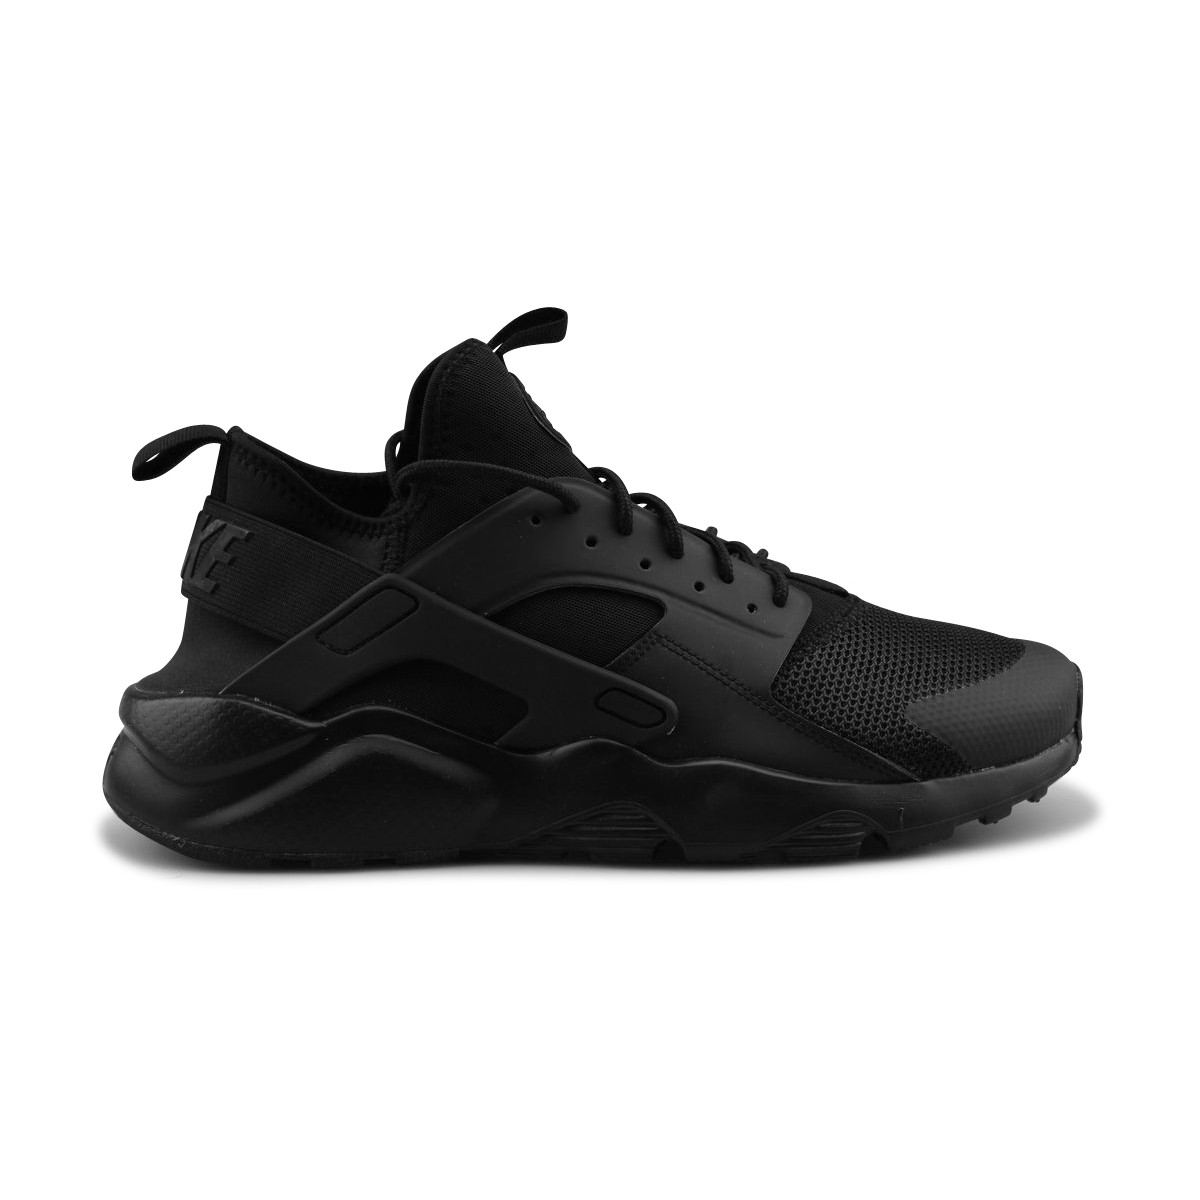 nike air huarache run ultra noir 819685 002 street shoes addict. Black Bedroom Furniture Sets. Home Design Ideas